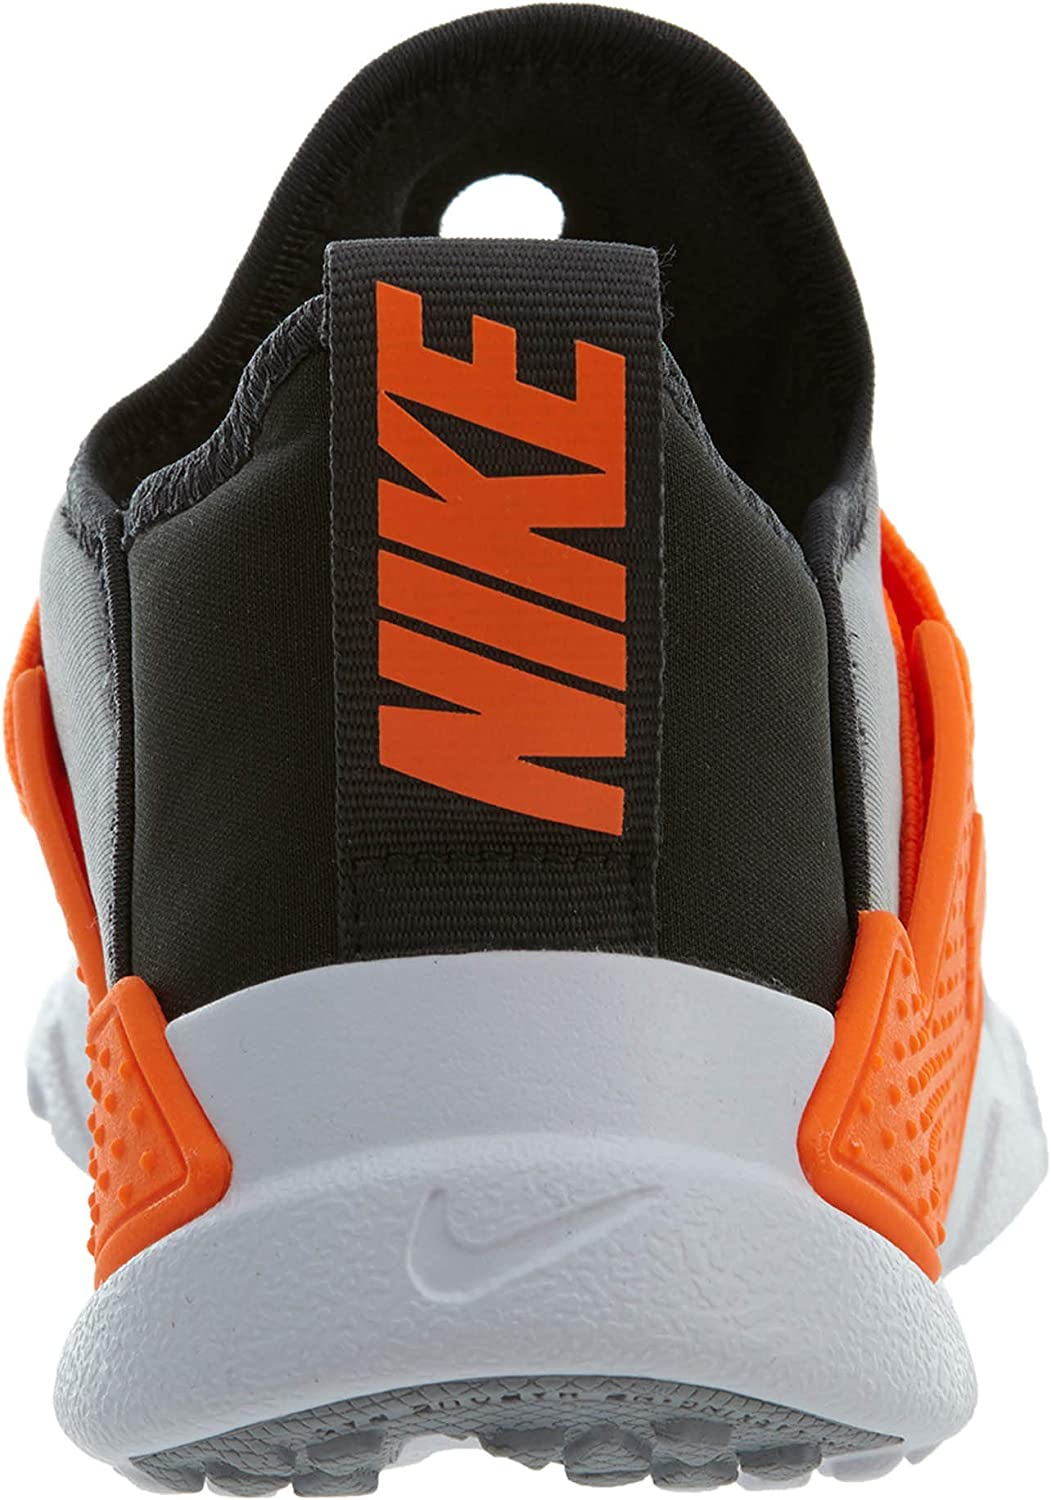 11 Nike Huarache Extreme Preschool Shoes Boys//Girls Style AH7826-008 Size